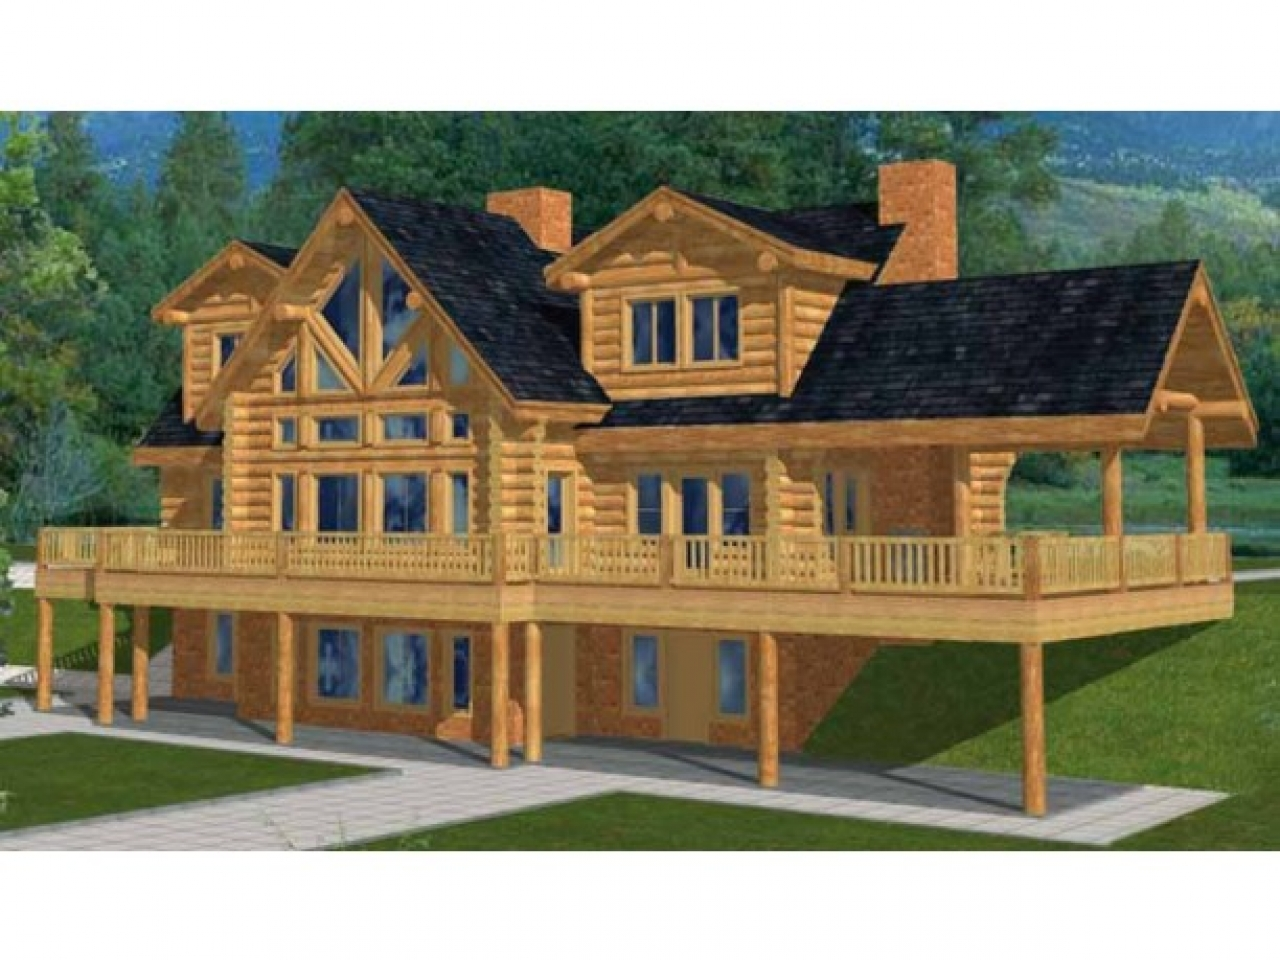 Two story log cabin house plans inexpensive modular homes for Plans for log cabin homes